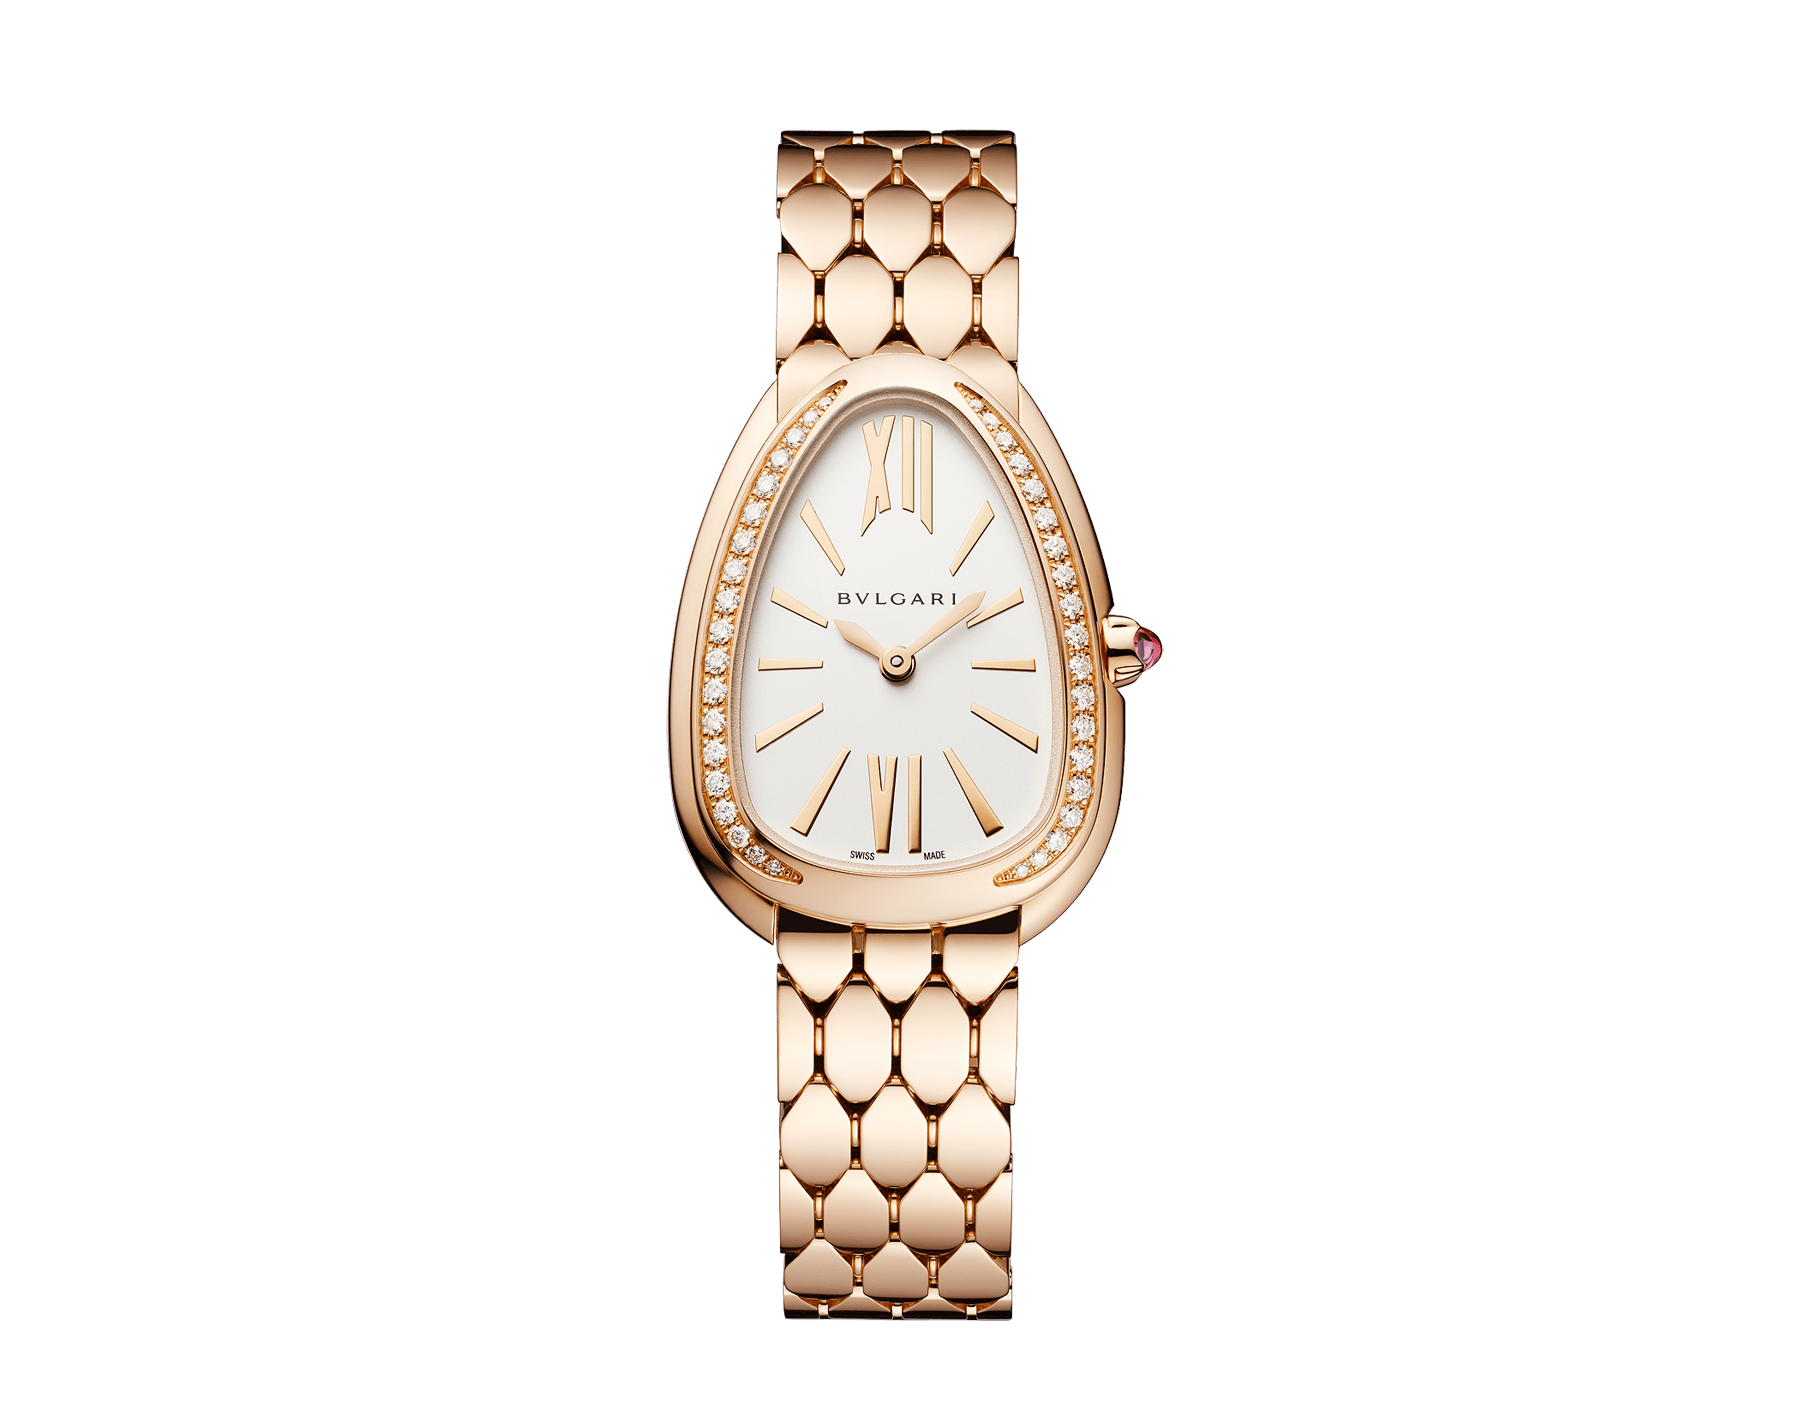 Serpenti Seduttori watch with 18 kt rose gold case, 18 kt rose gold bracelet, 18 kt rose gold bezel set with diamonds and a white silver opaline dial. 103146 image 1